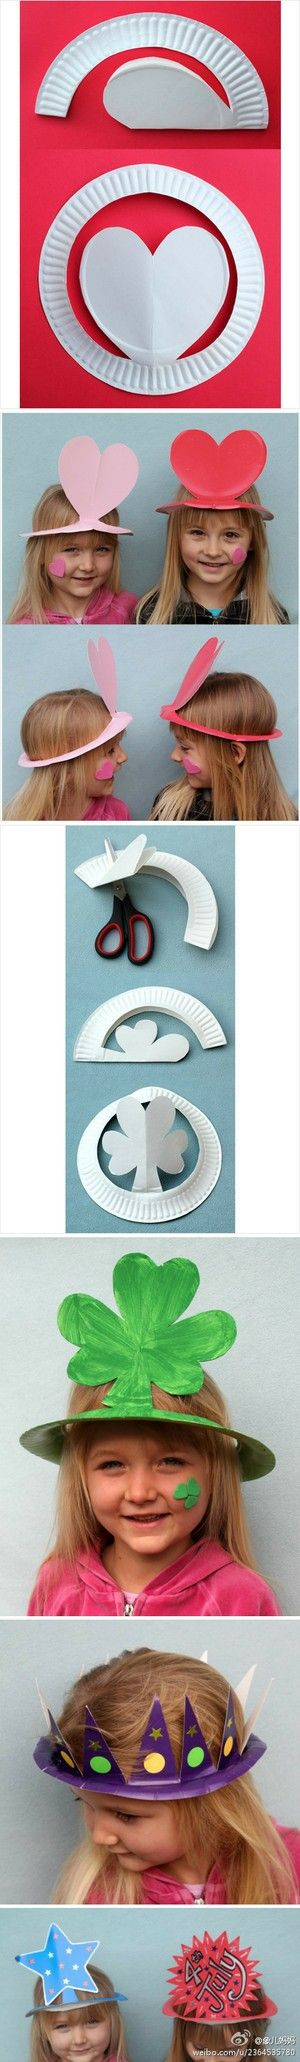 Cool paper plate idea for any occasion